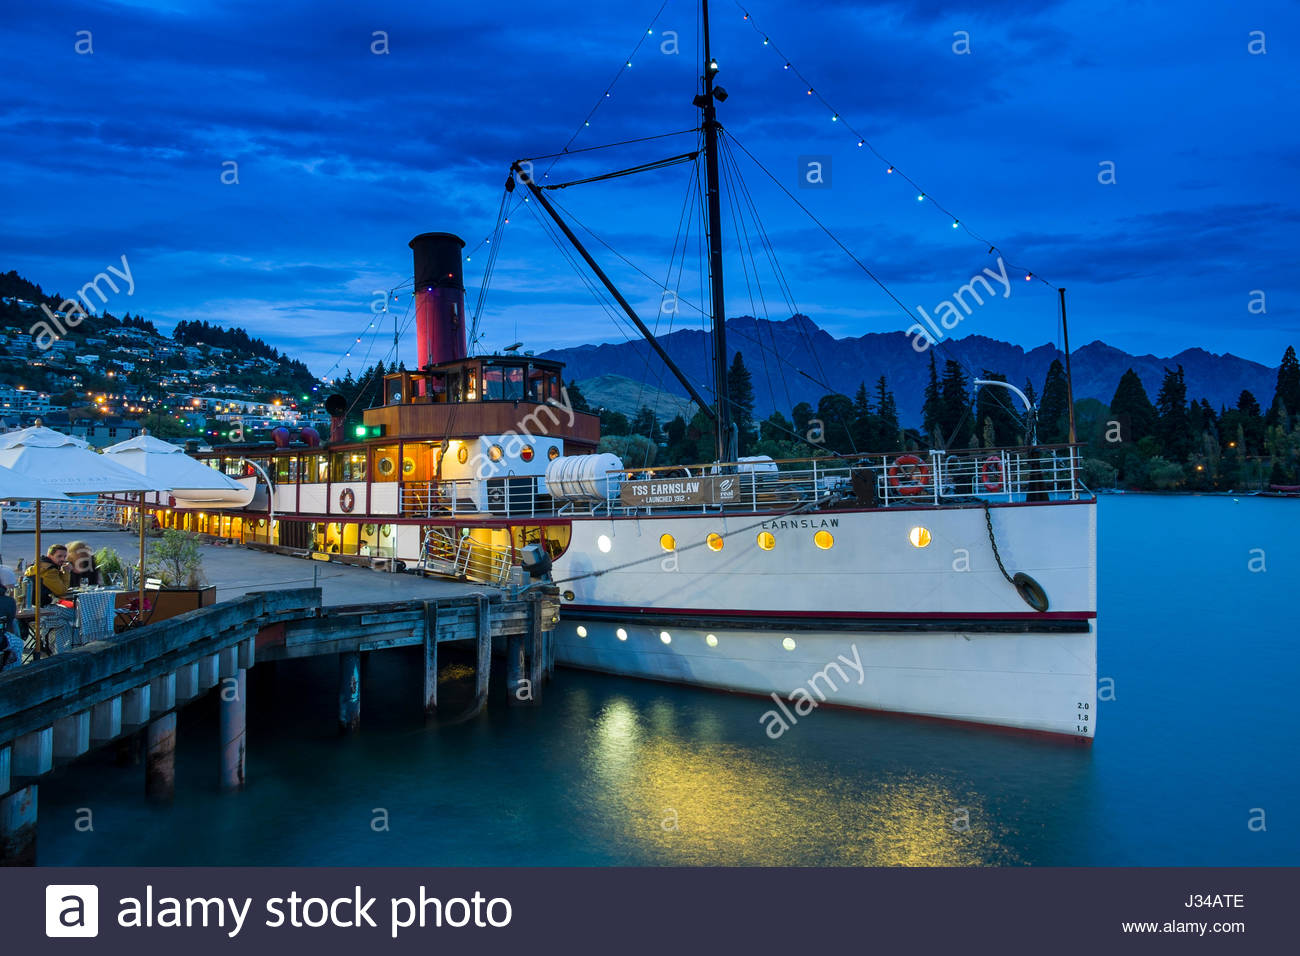 tss-earnslaw-vintage-steamship-at-dock-o